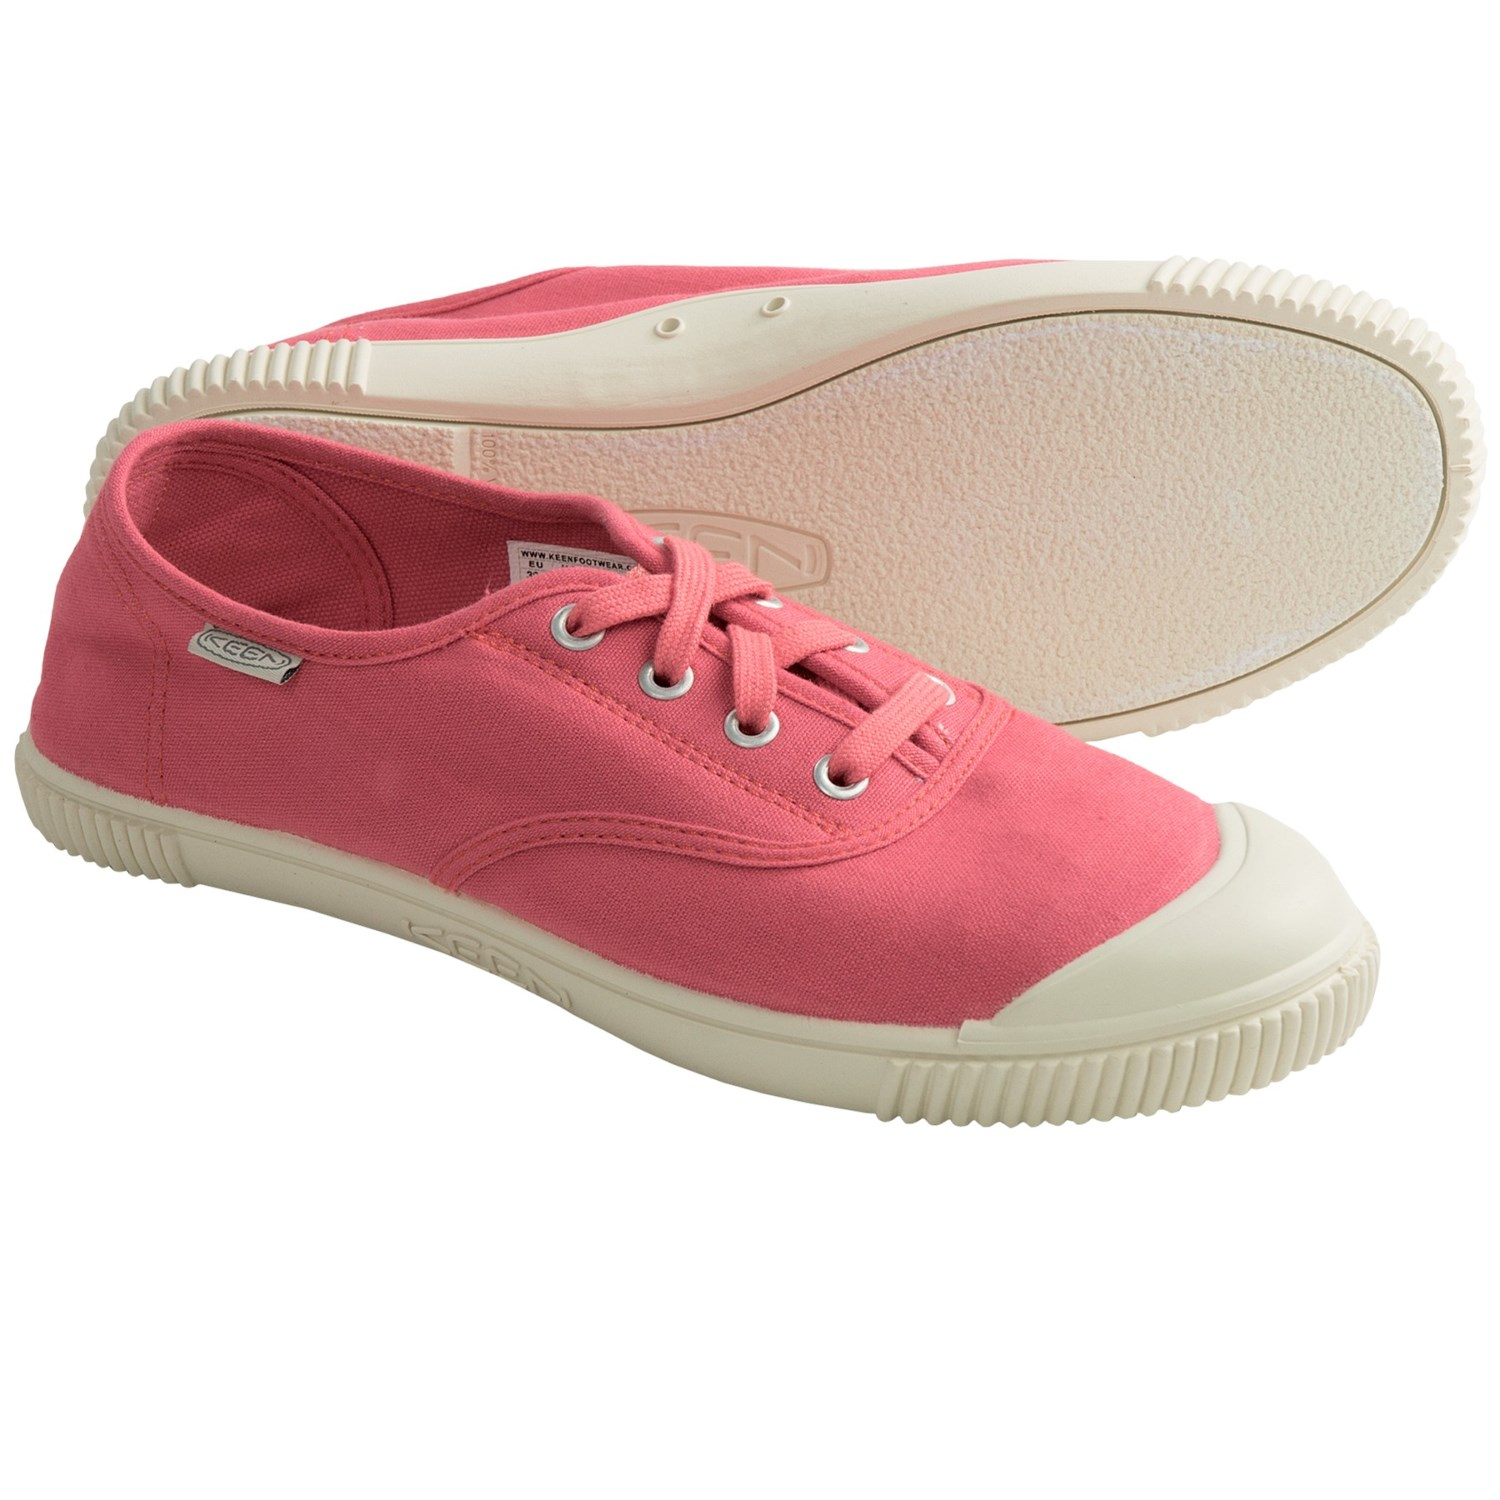 Keen Maderas Oxford Shoes (For Women) in Hot Coral